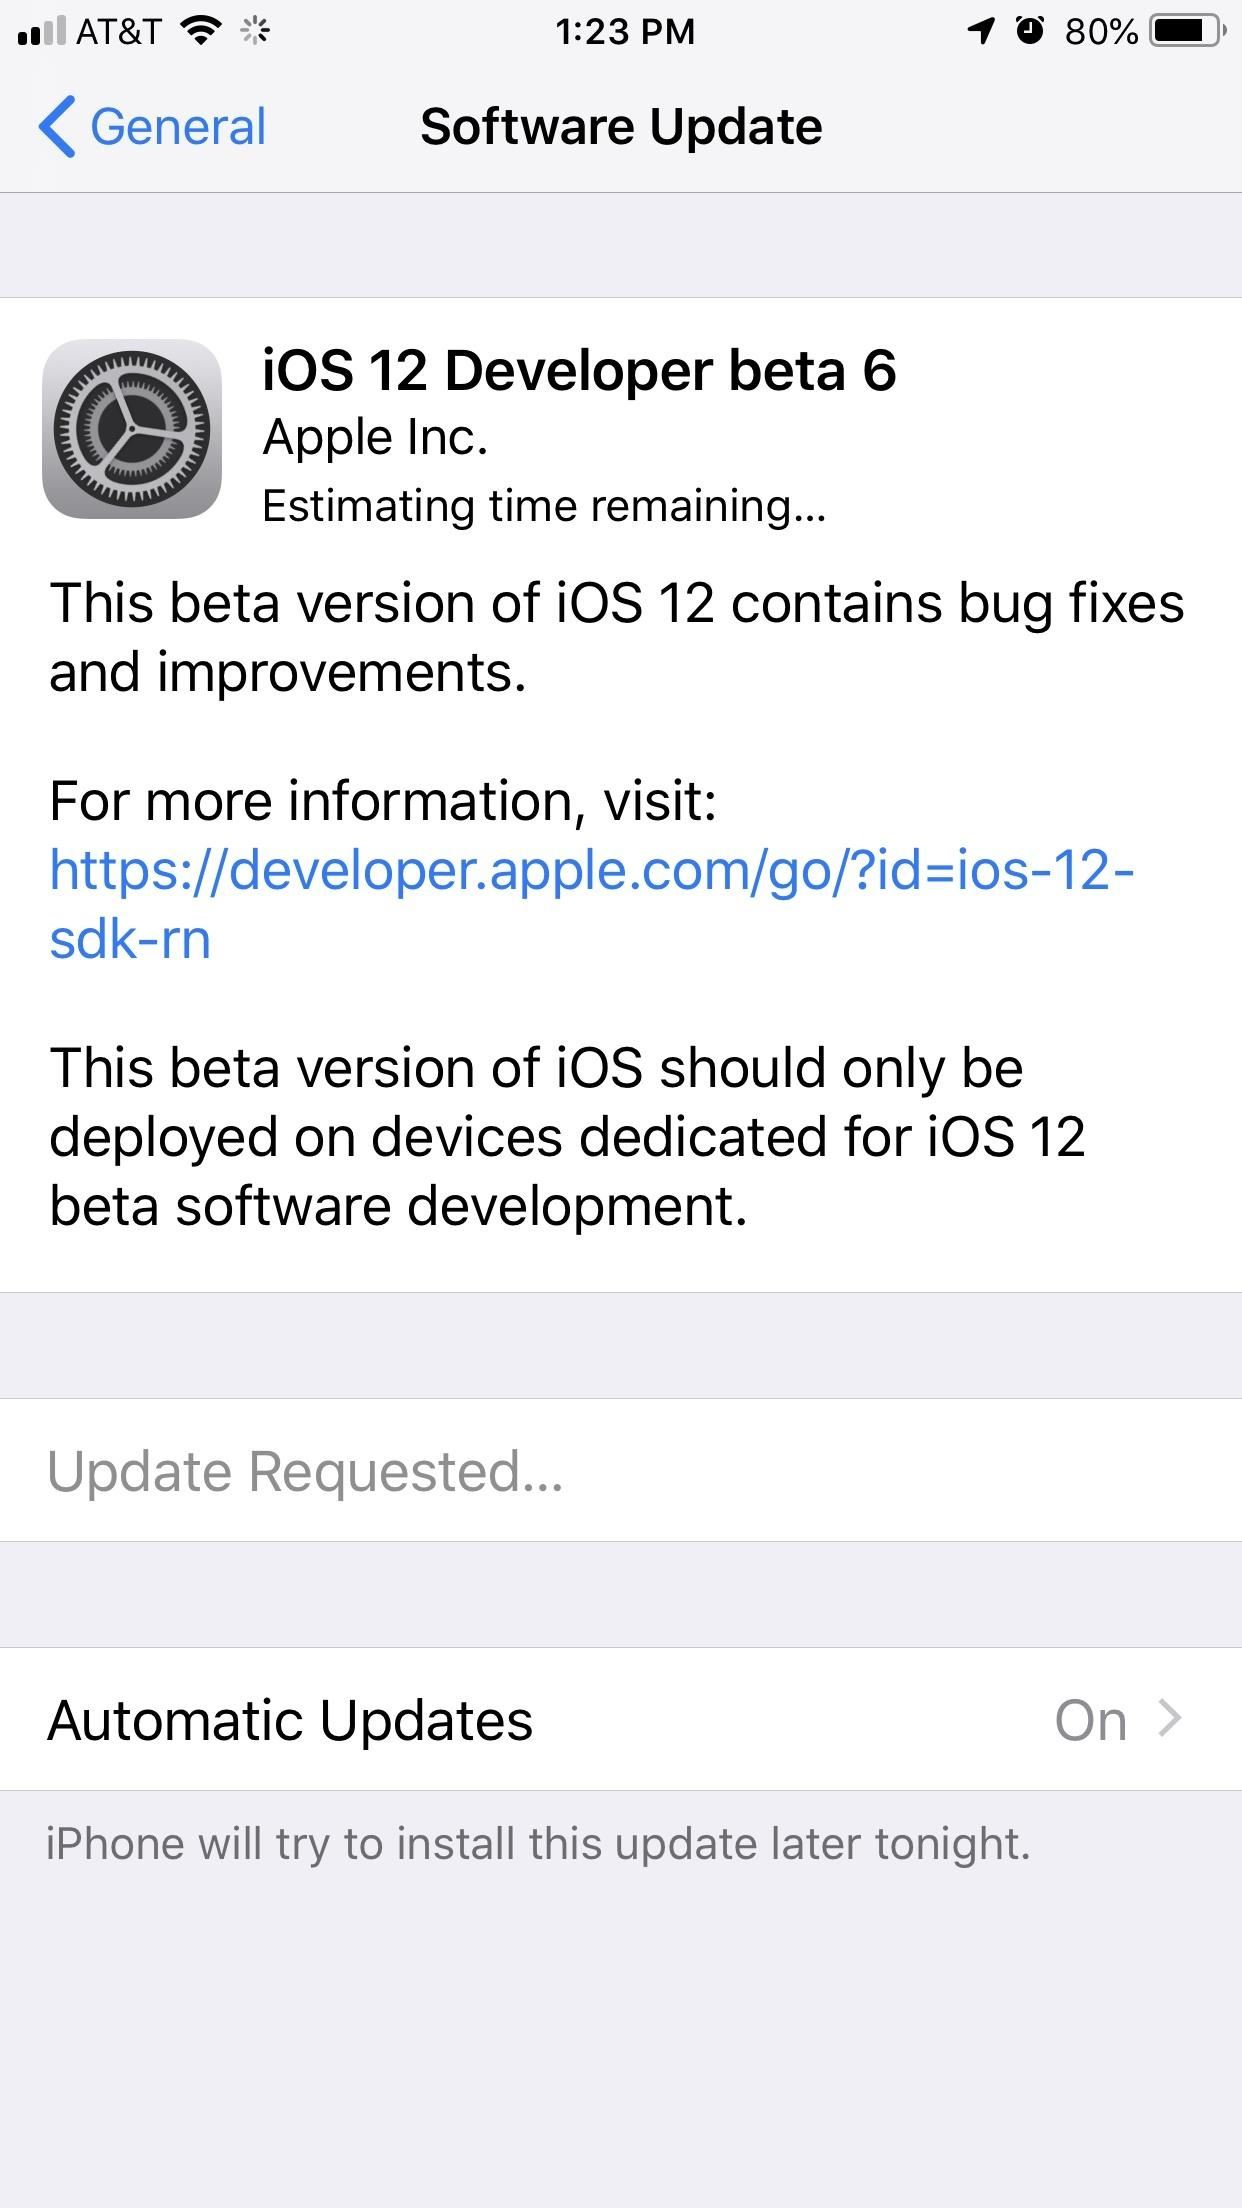 iOS 12 Beta 6 for iPhones Released to Apple Developers